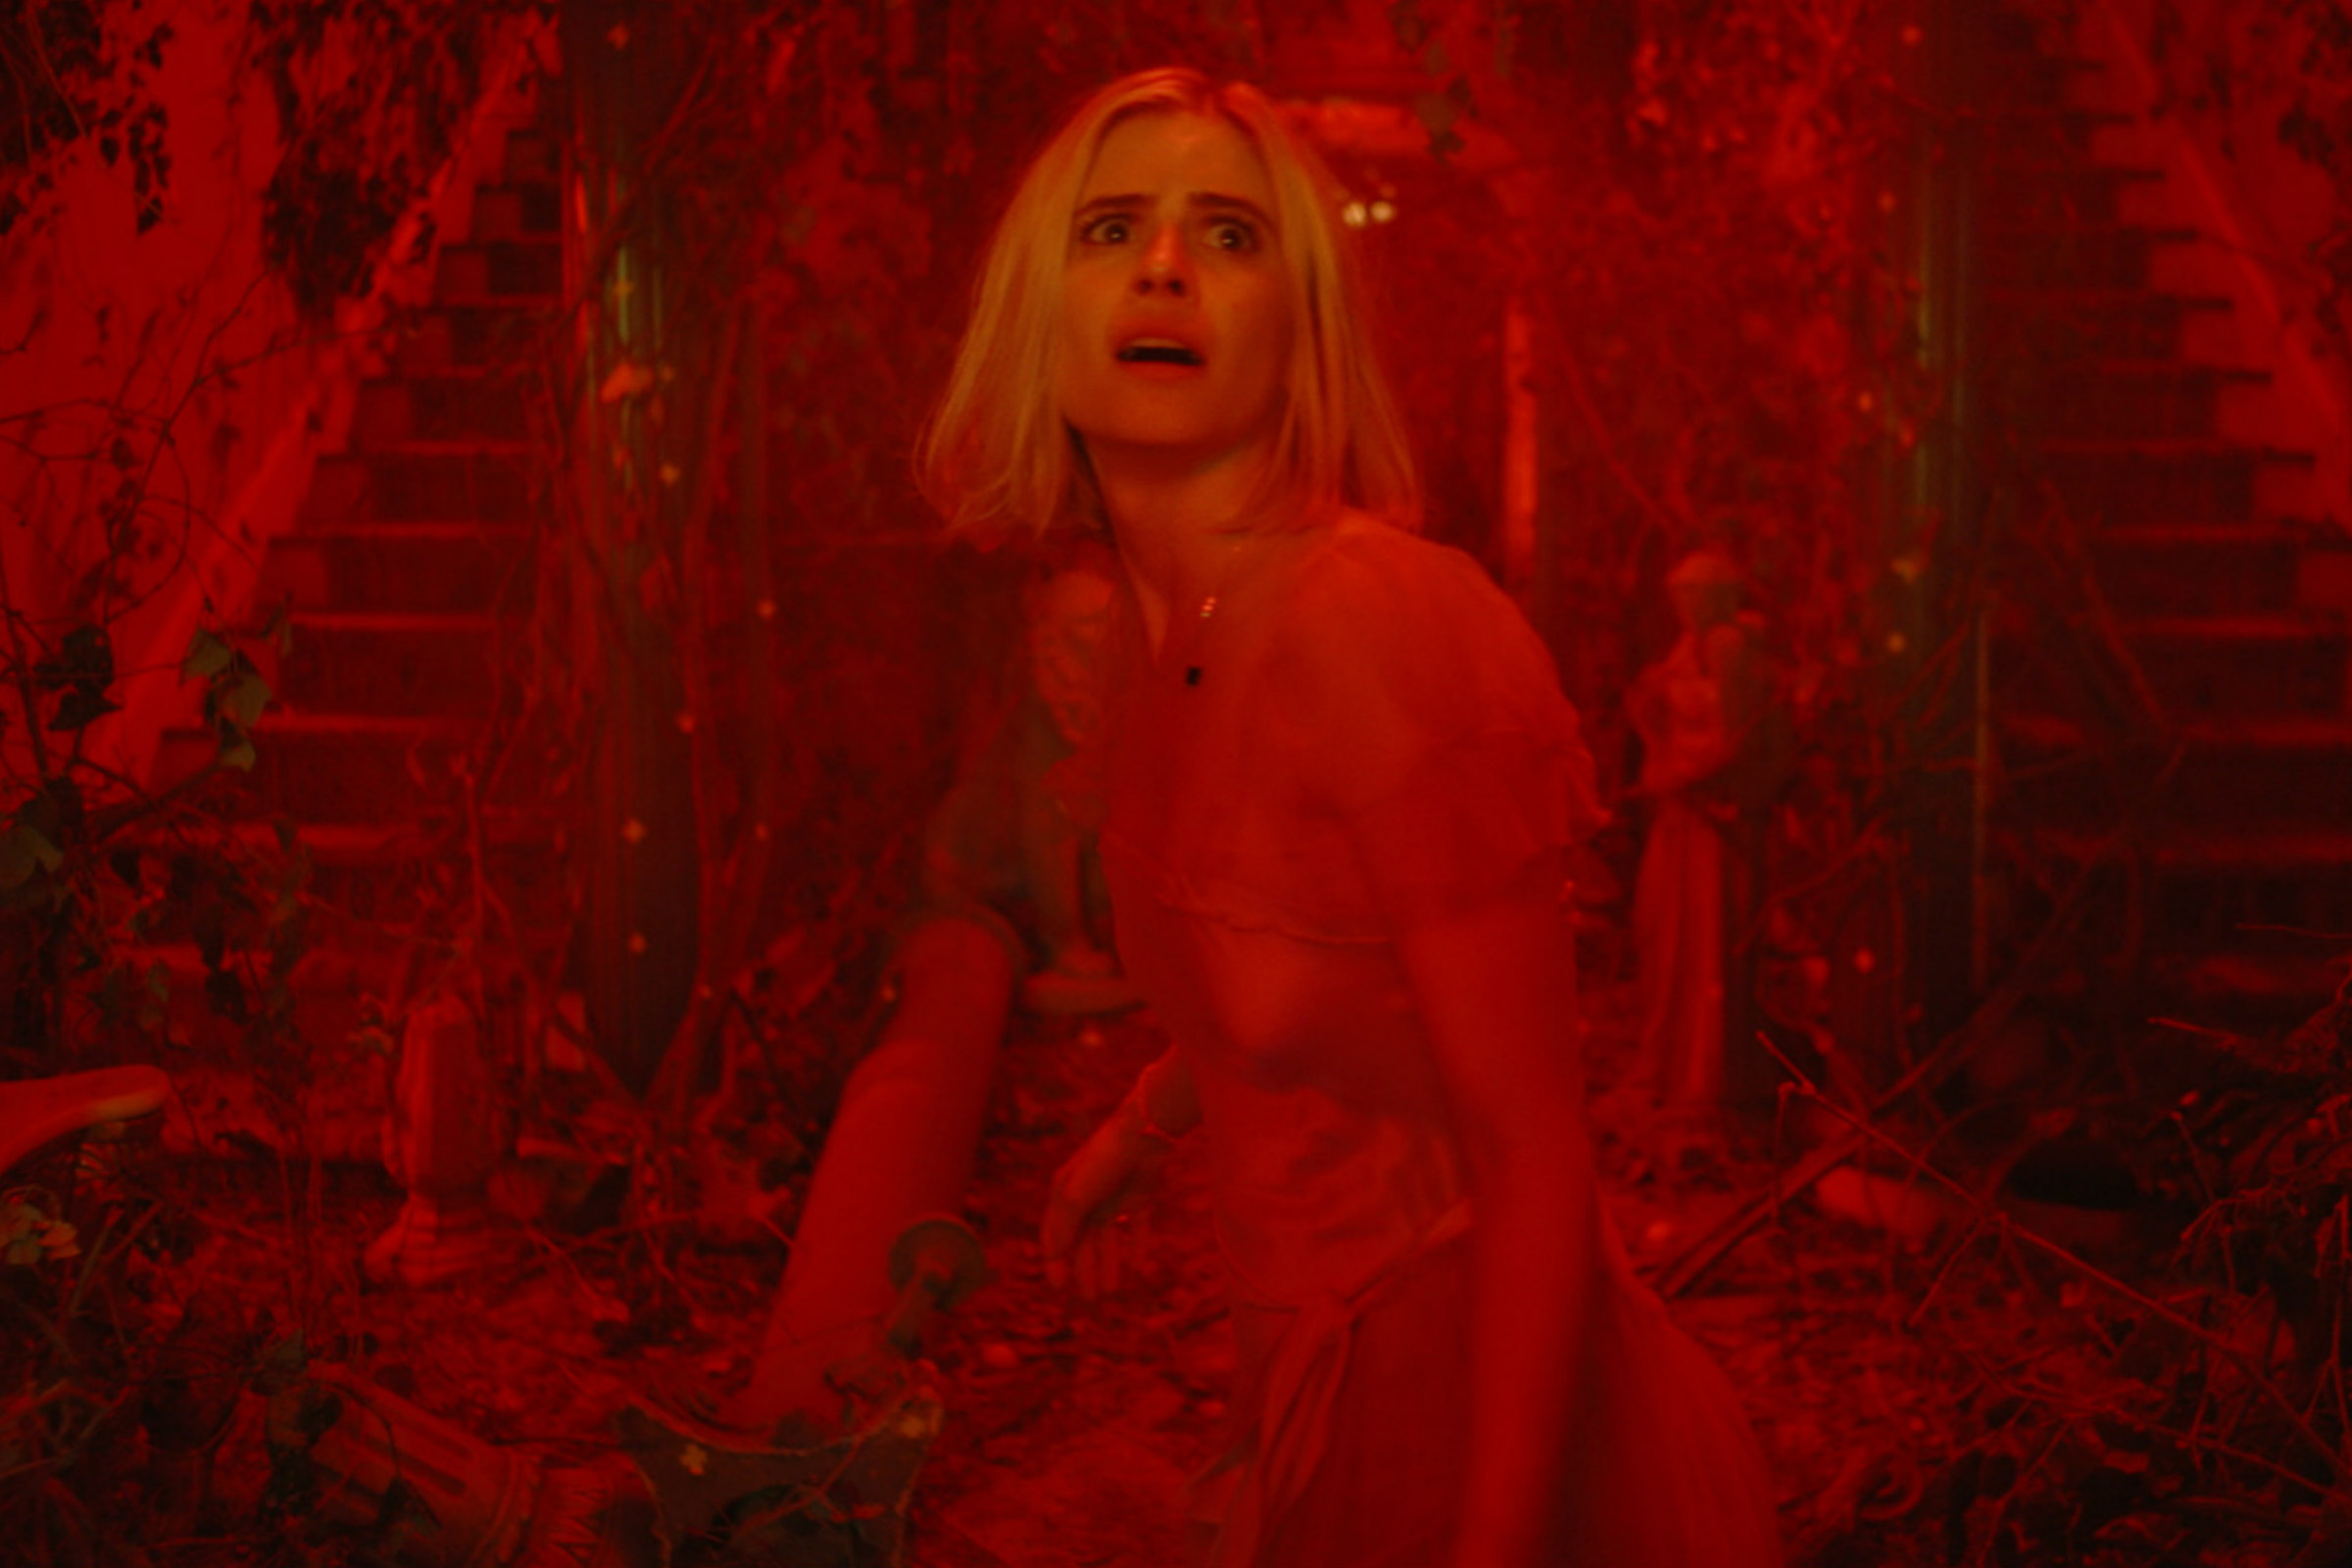 Carlson Young plays Margaret, a white woman with short, blond hair, who looks aghast as she moves through a deep red world, in The Blazing World